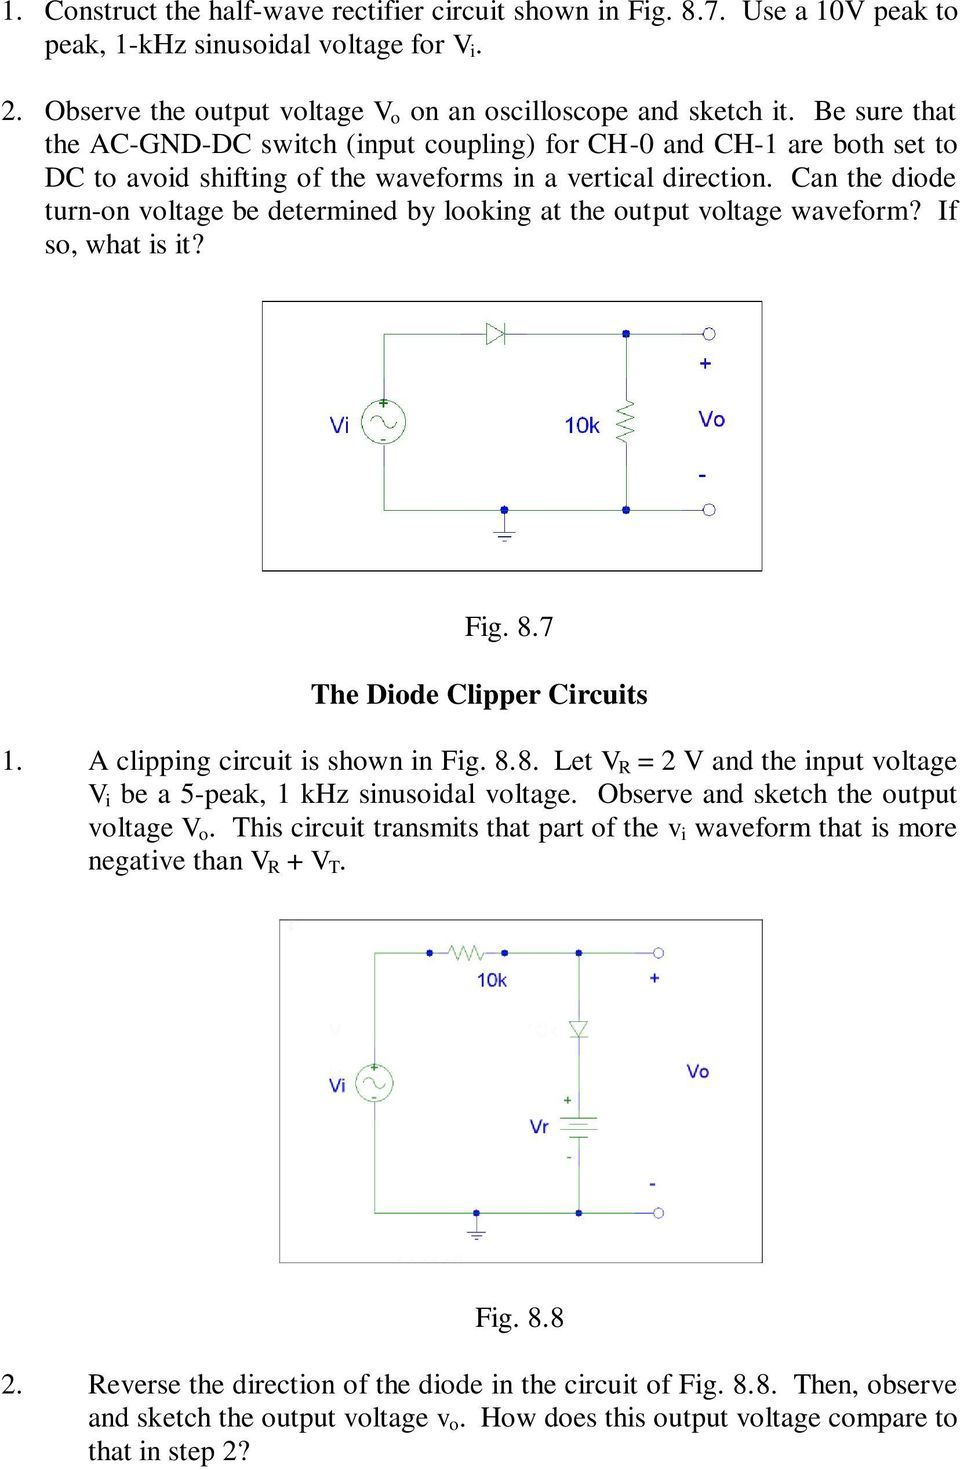 Can the diode turn-on voltage be determined by looking at the output voltage waveform? If so, what is it? Fig. 8.7 The Diode Clipper Circuits 1. A clipping circuit is shown in Fig. 8.8. Let V R = 2 V and the input voltage V i be a 5-peak, 1 khz sinusoidal voltage.